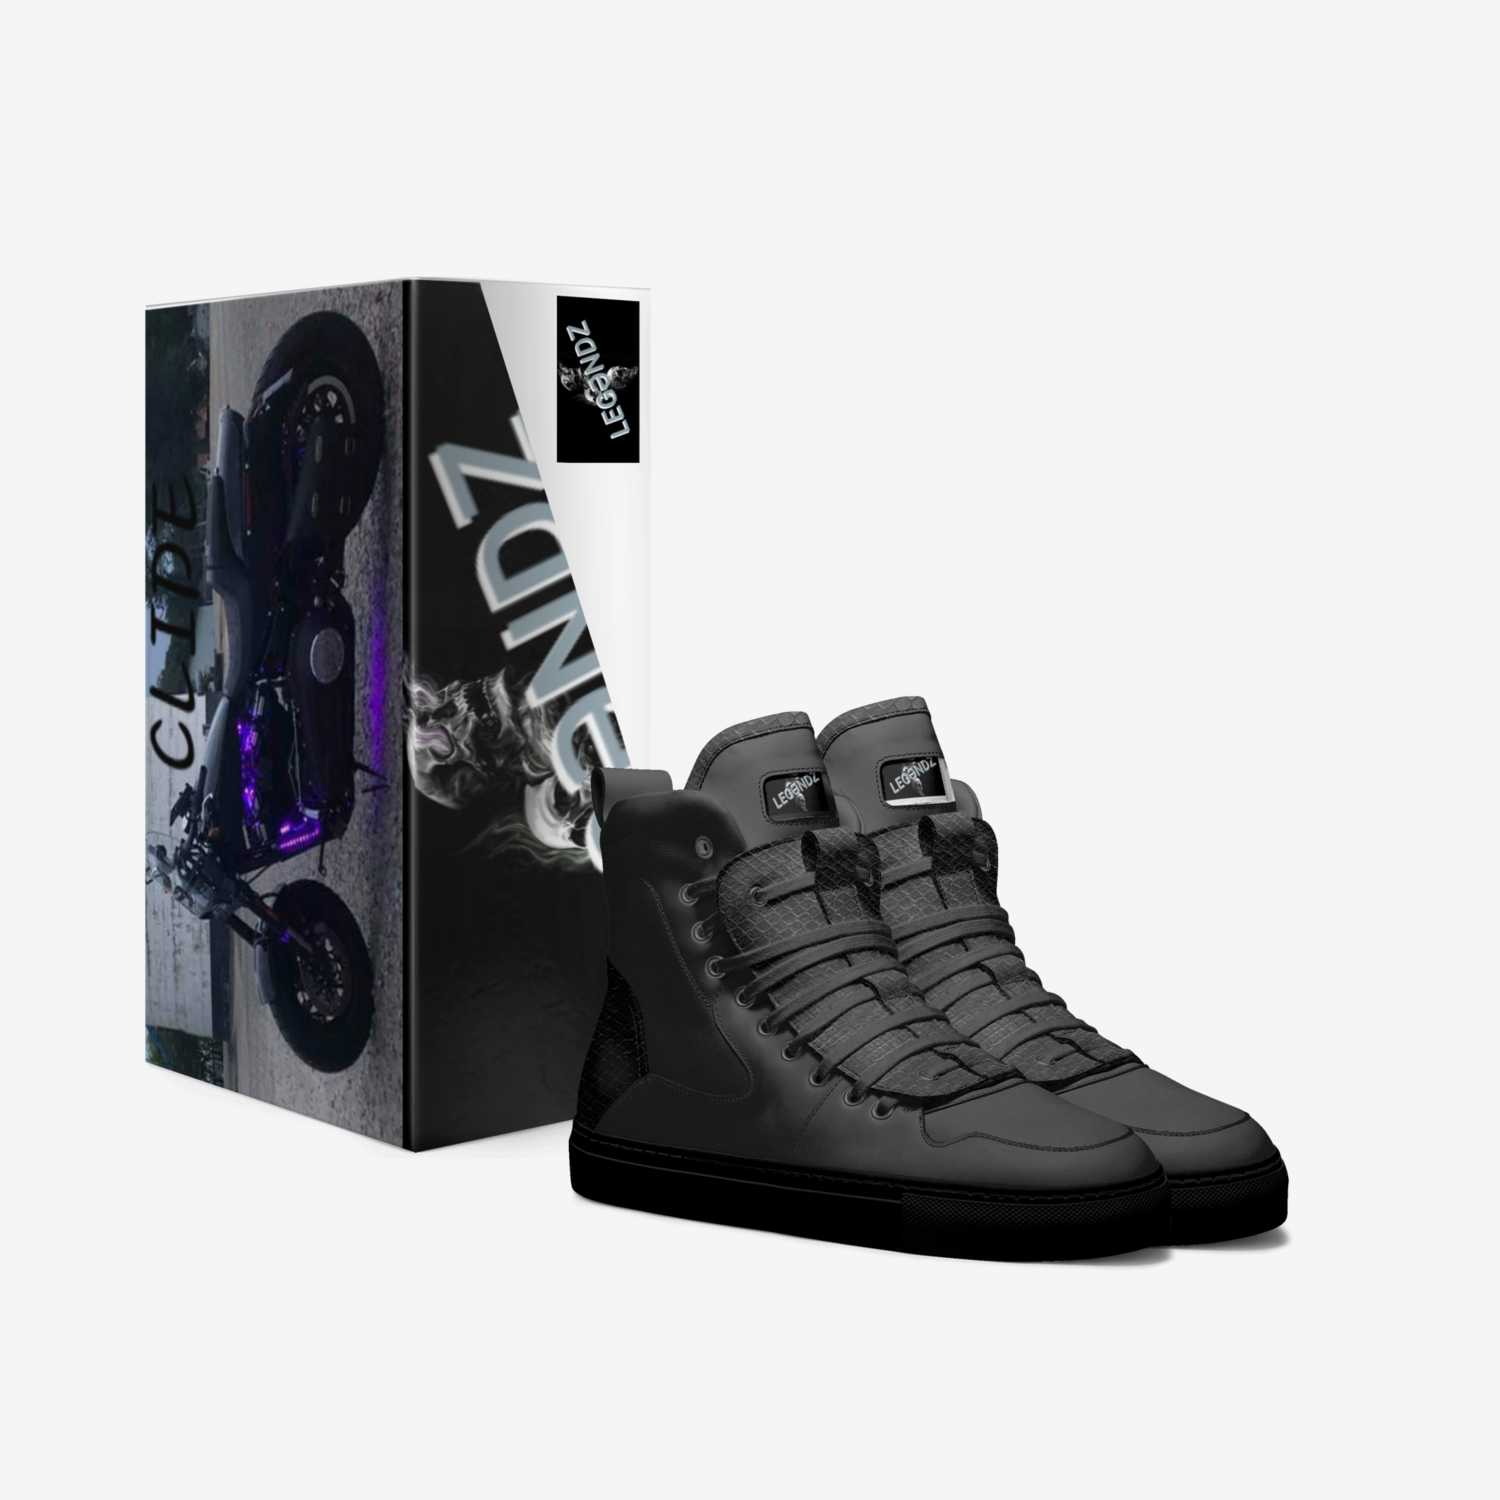 CLIDE custom made in Italy shoes by Juju & Najm Toomey | Box view